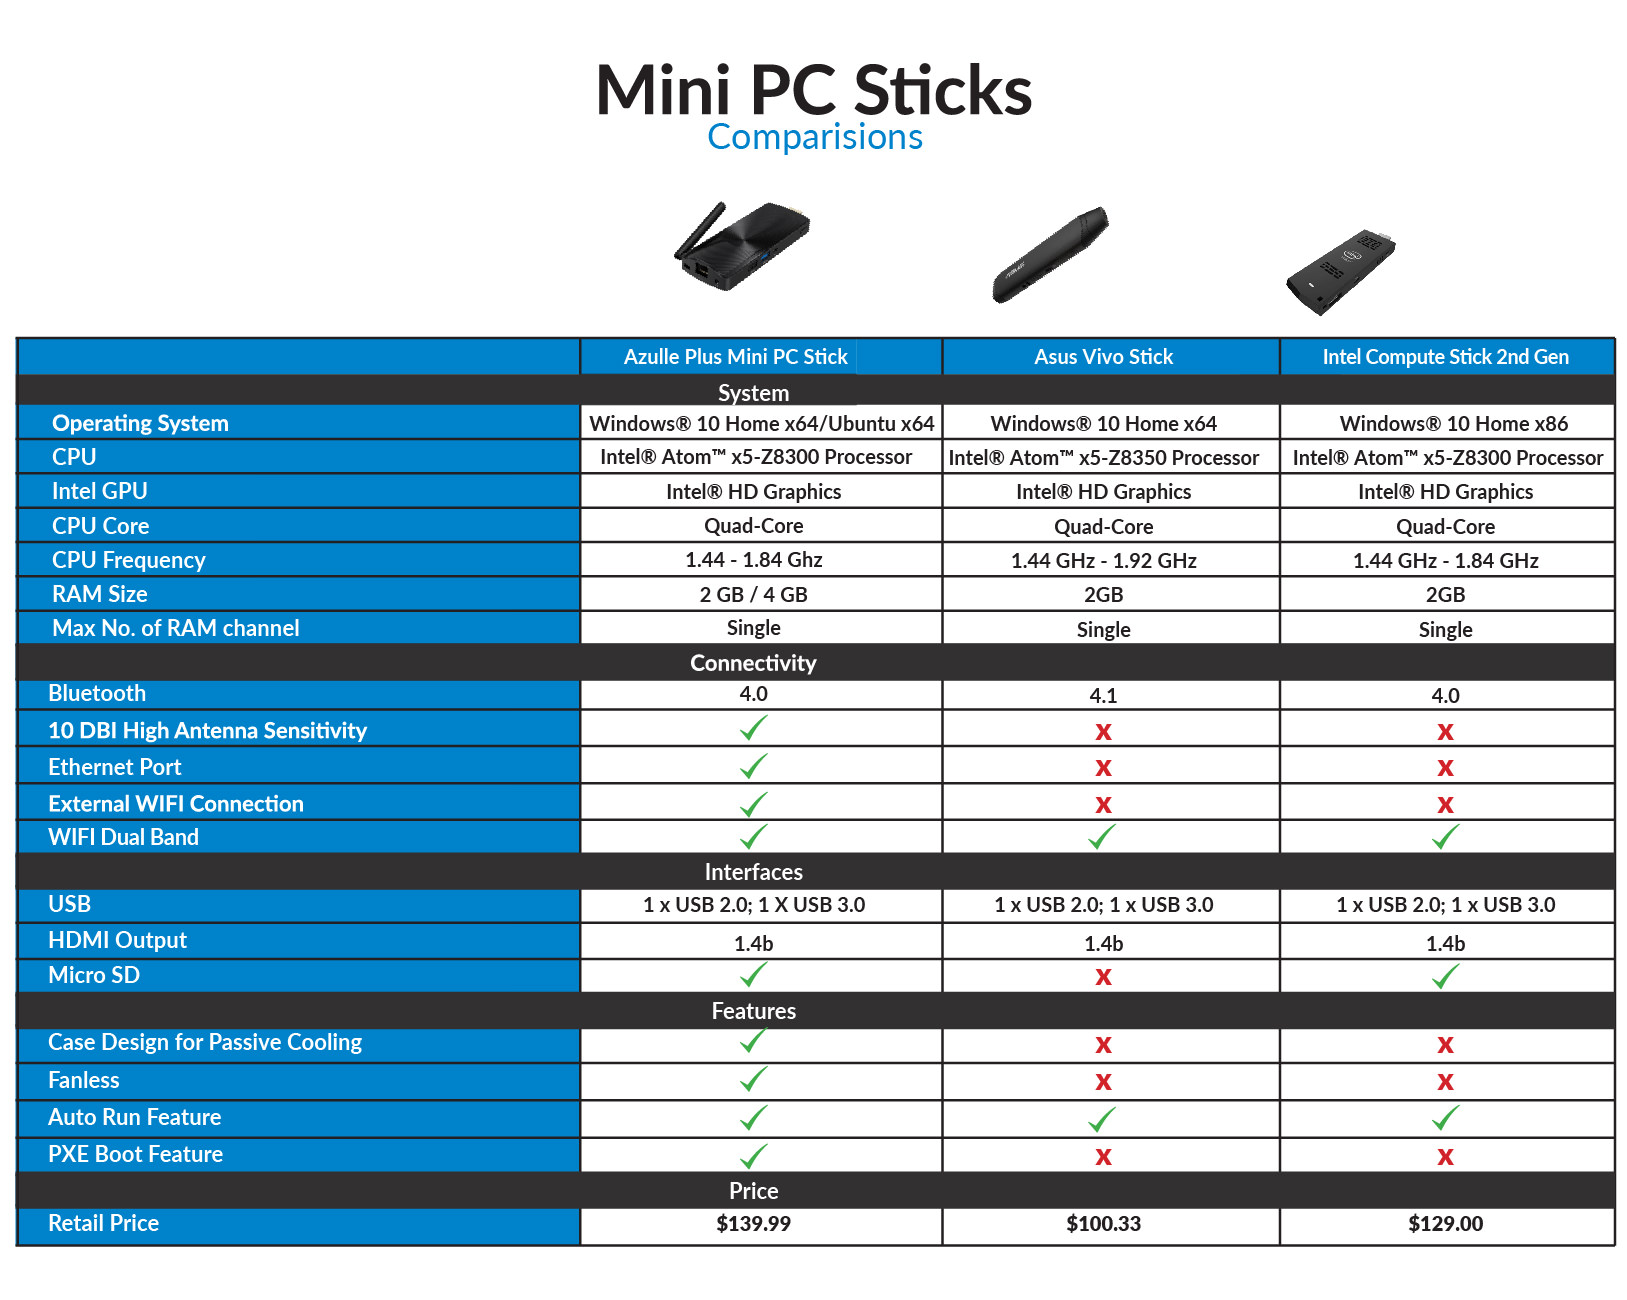 mini-pc-sticks-comparison-chart2-01